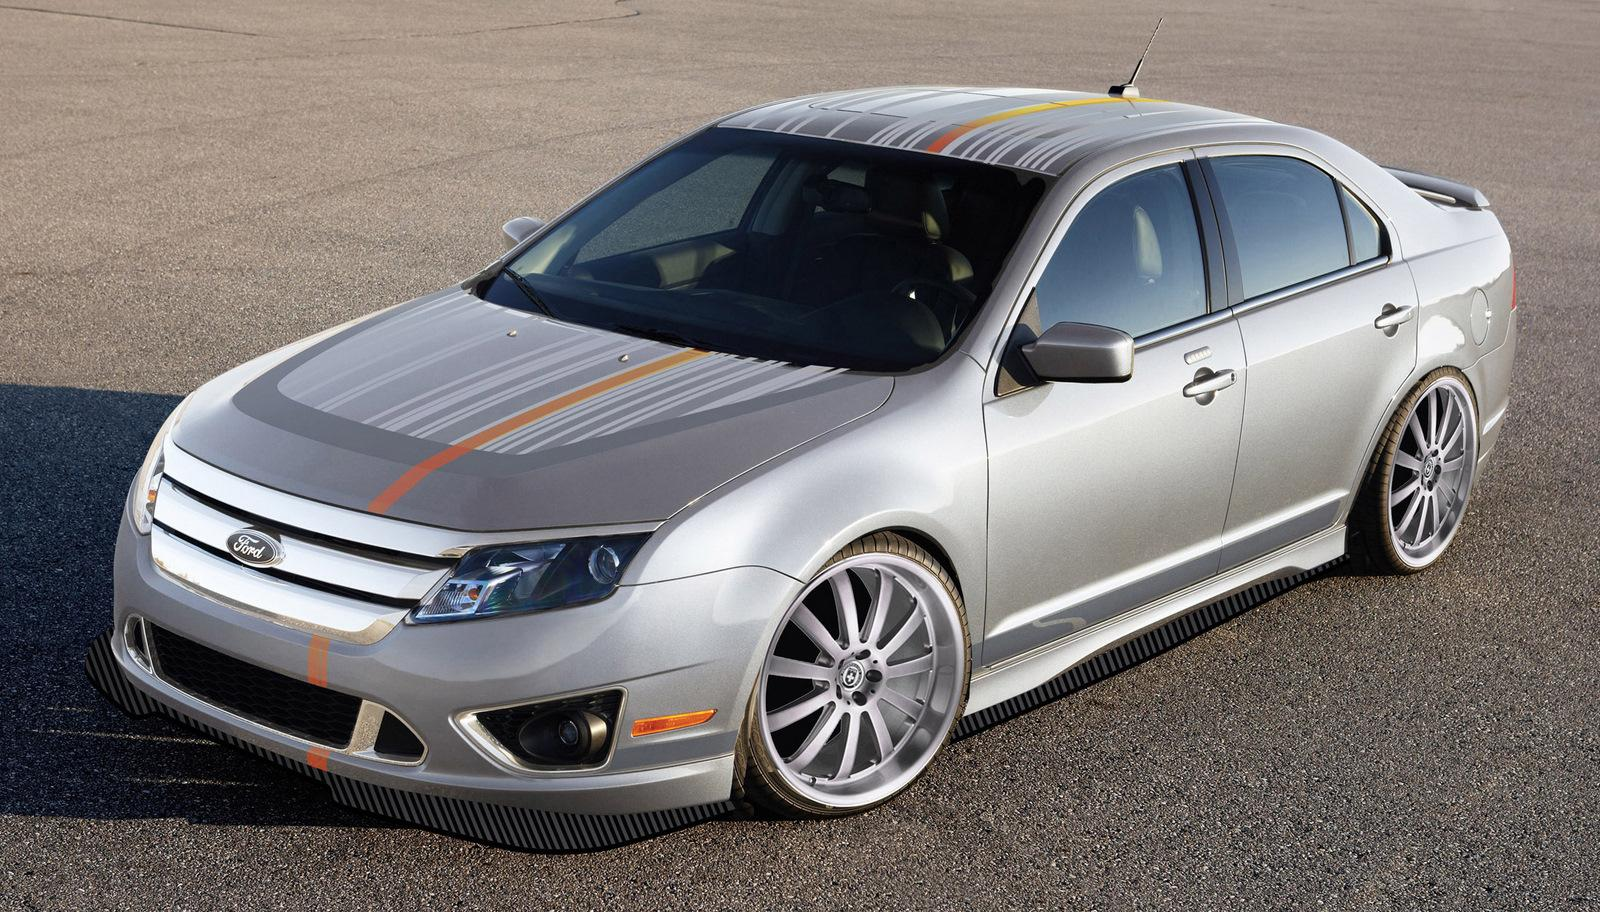 Car au ford fusion tuning used and new cars from australia car company and best australian